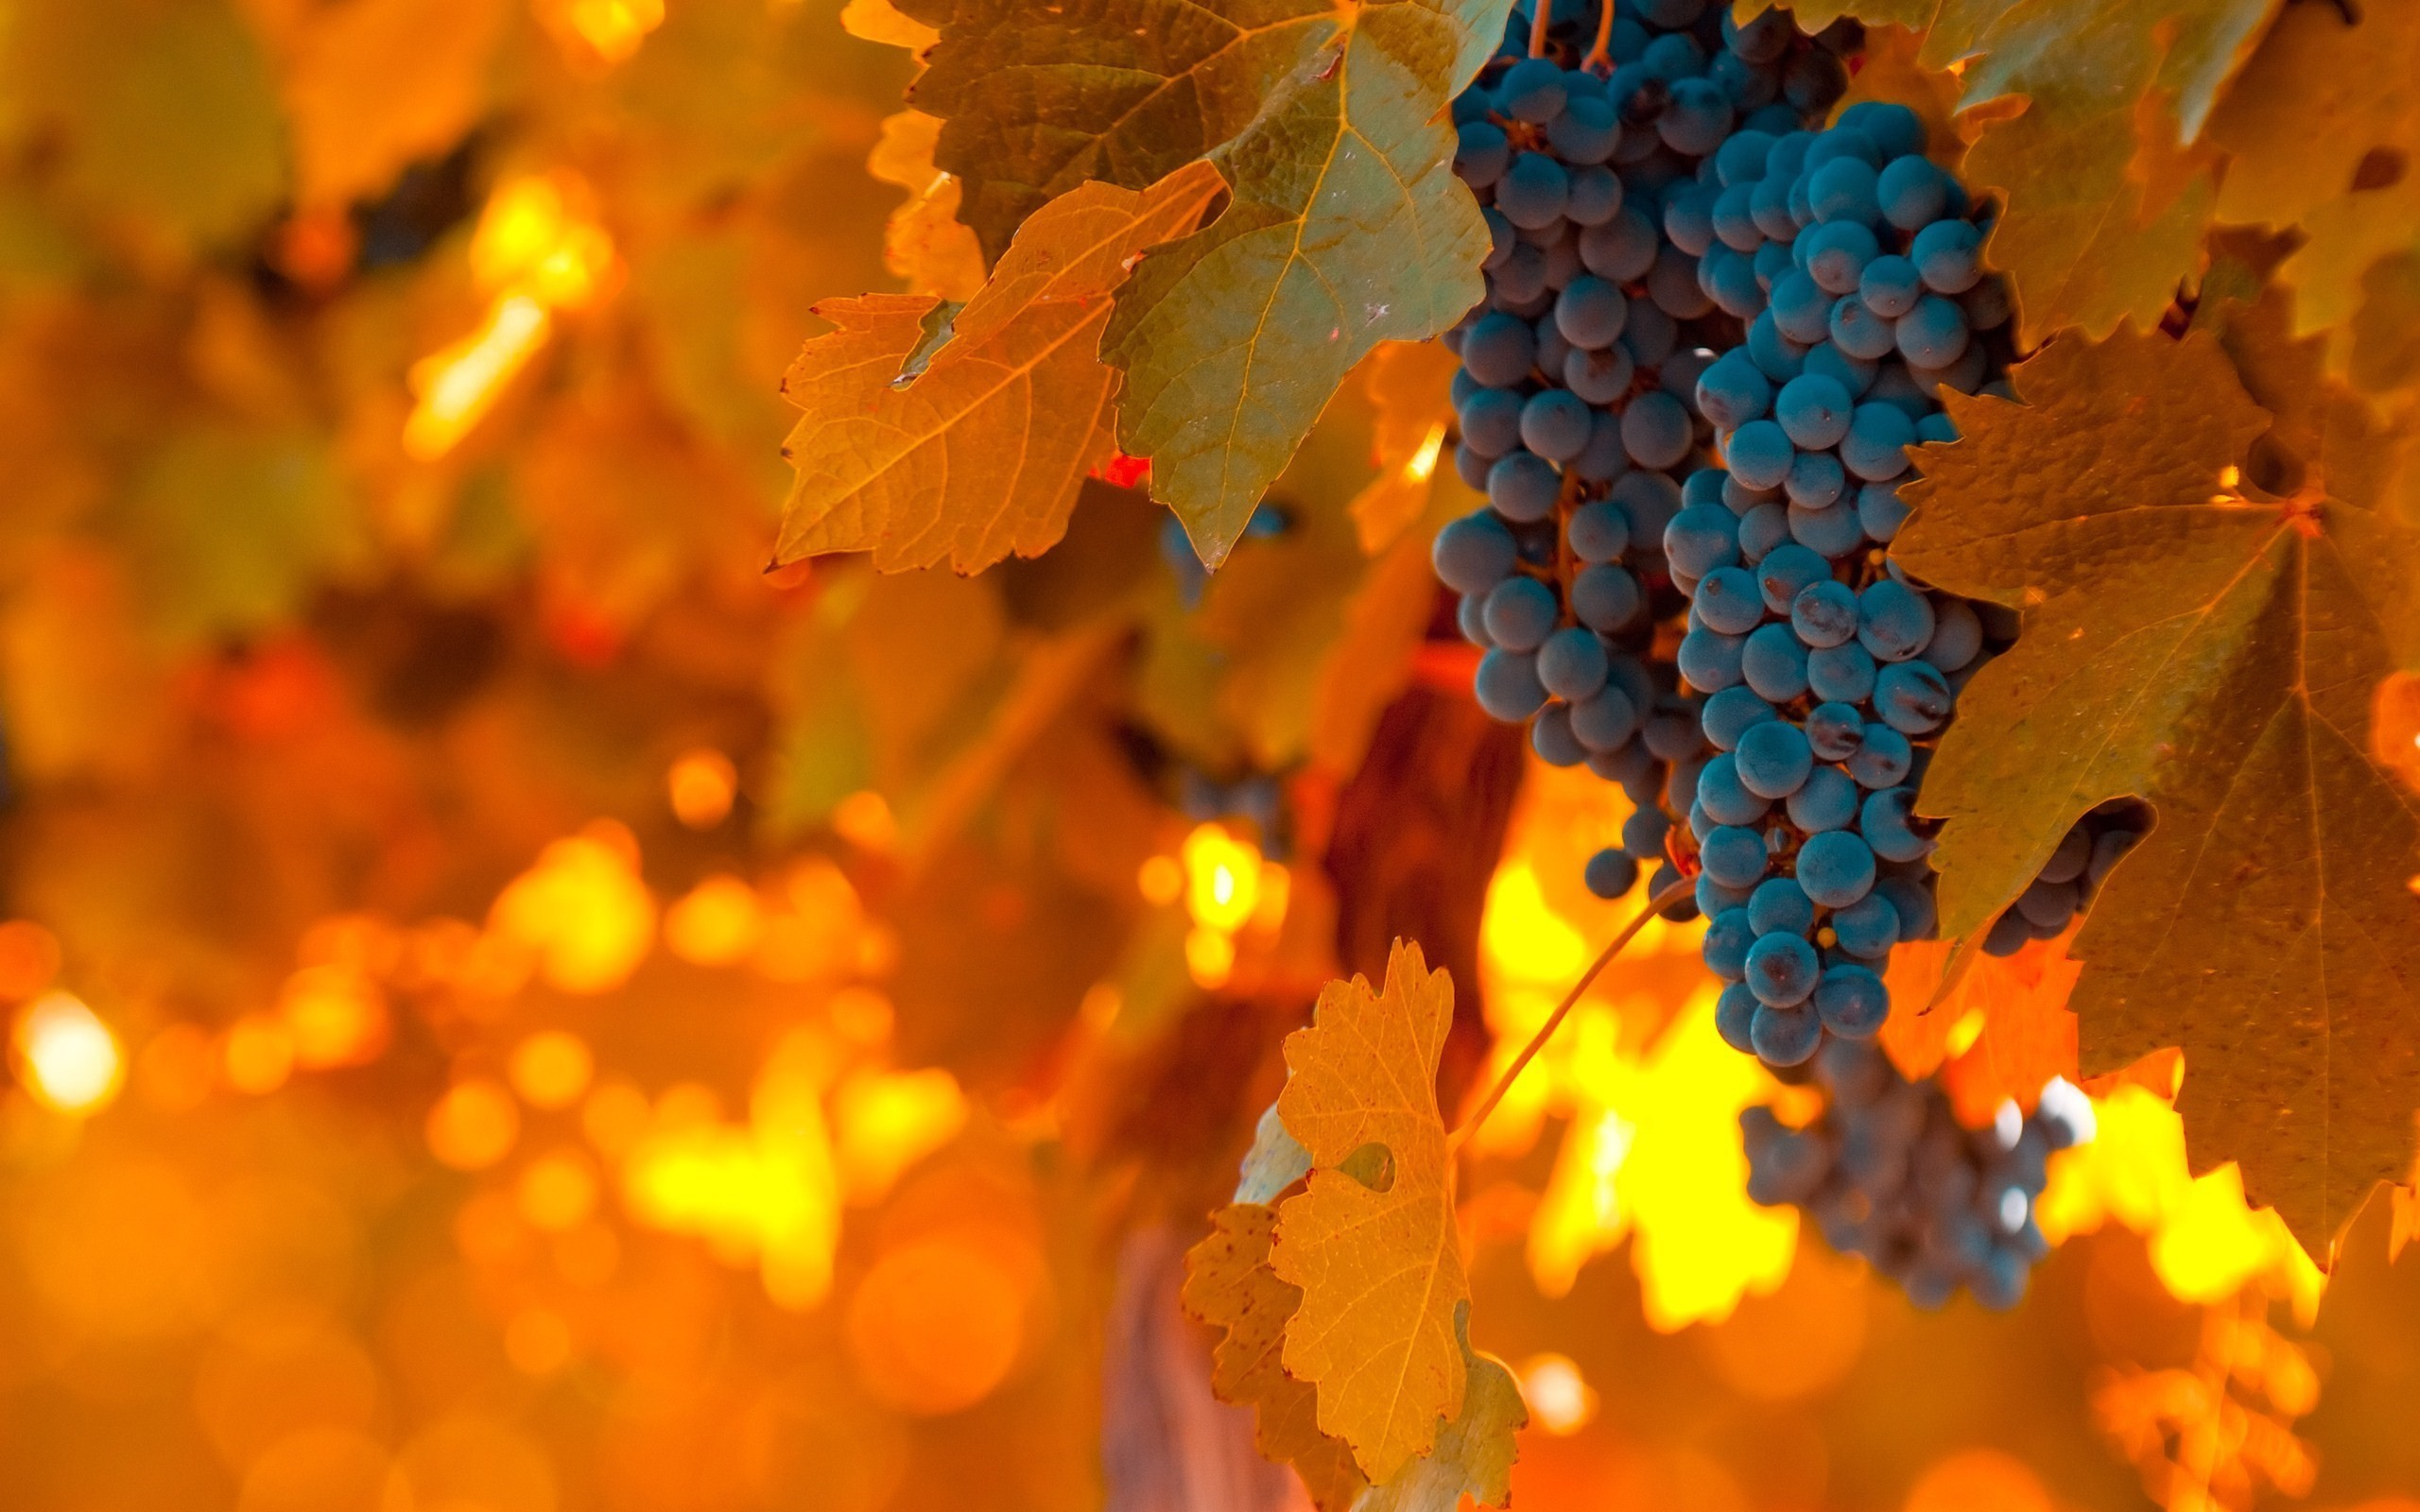 2560x1600 vineyard grapes wallpaper 2961